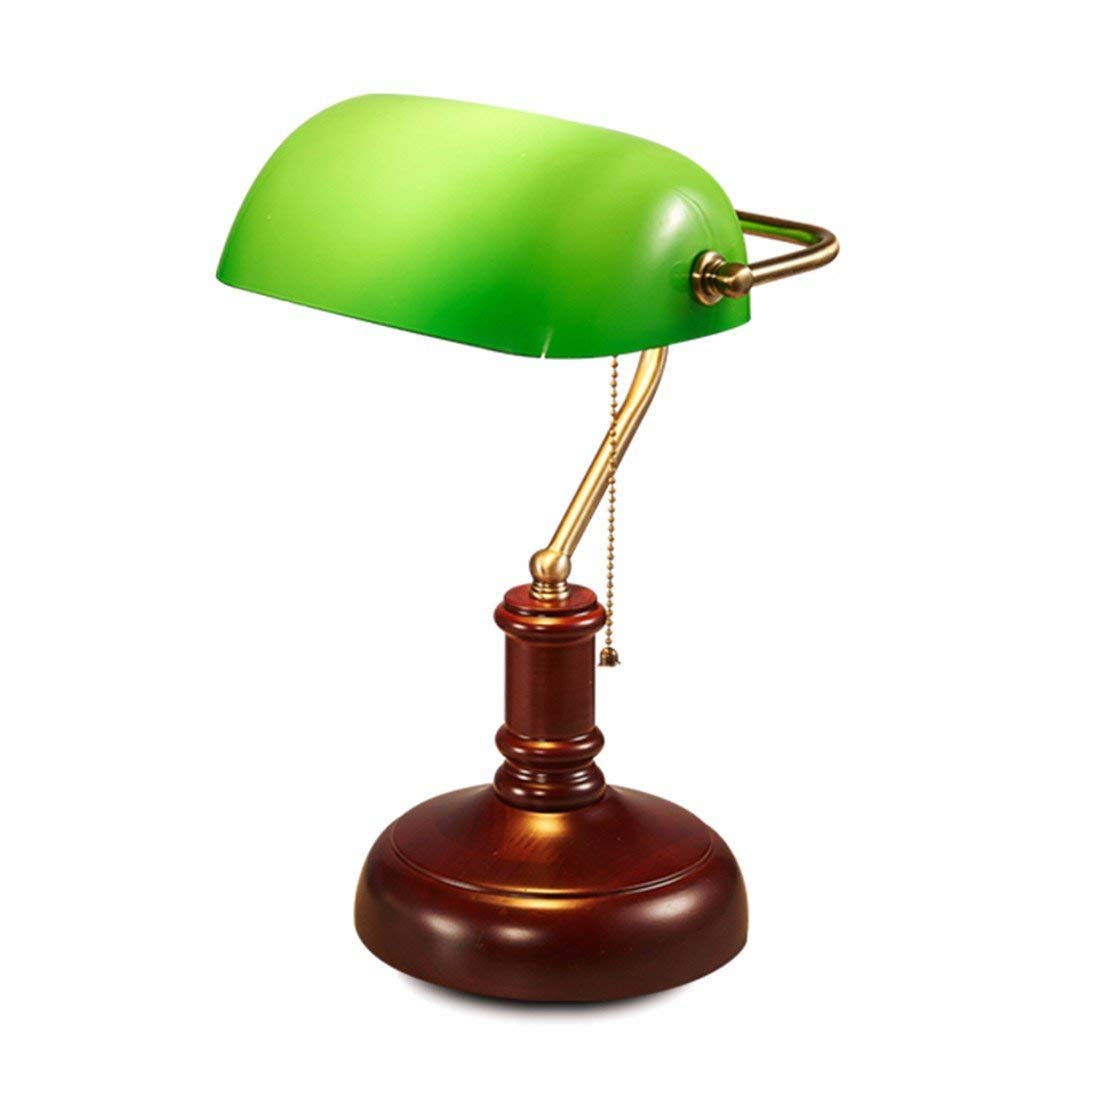 QPGGP-Table Lamp European Retro Retro Green Cover Solid Wood Study Eye Protecting Luxury Office Desk Lamp